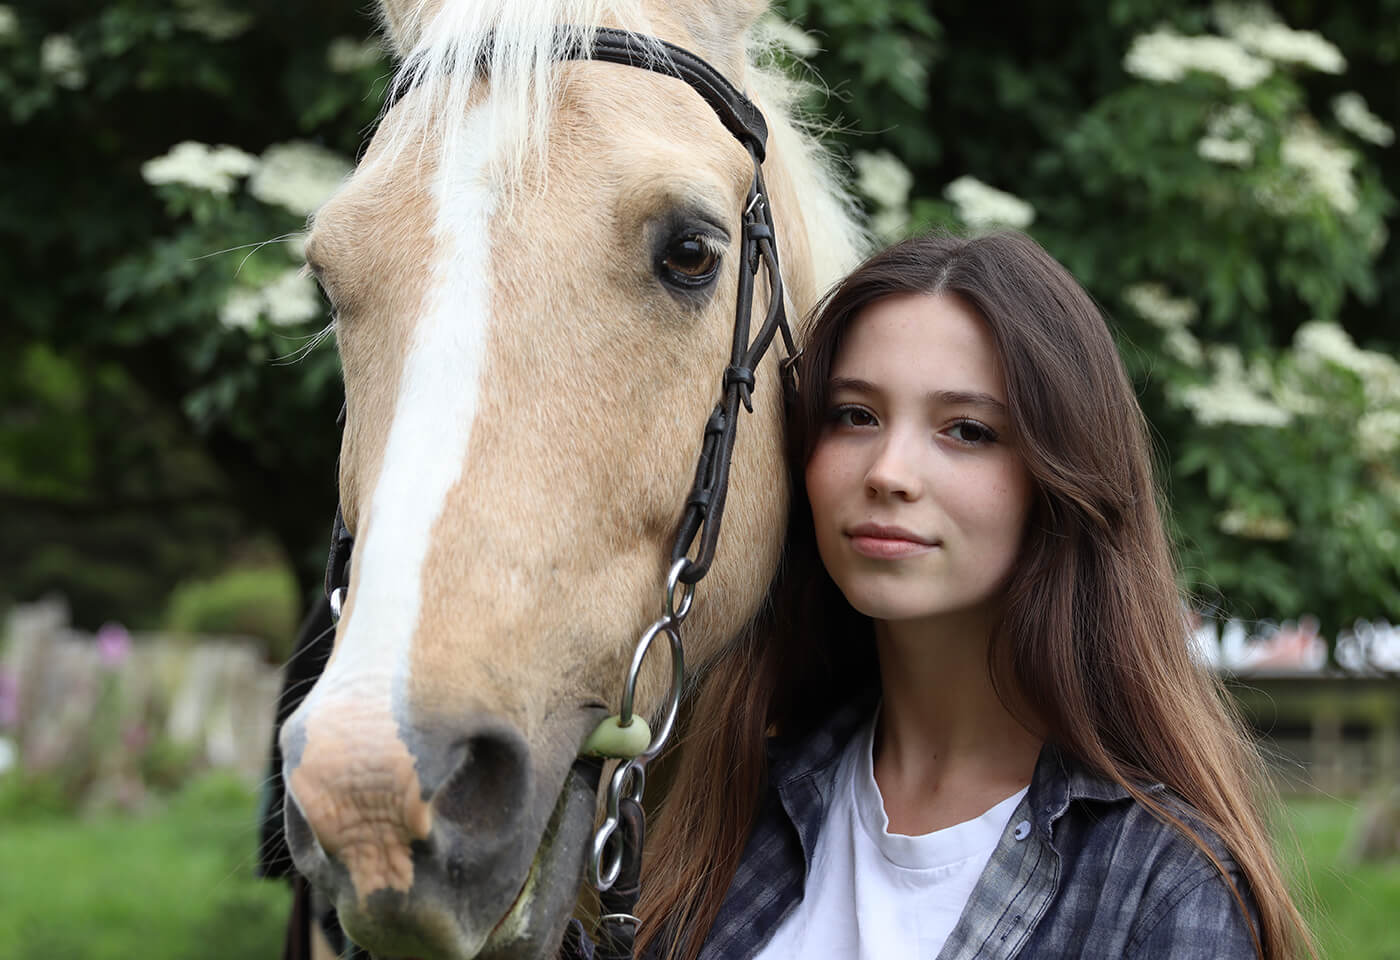 Image of model and horse taken using EOS 850D